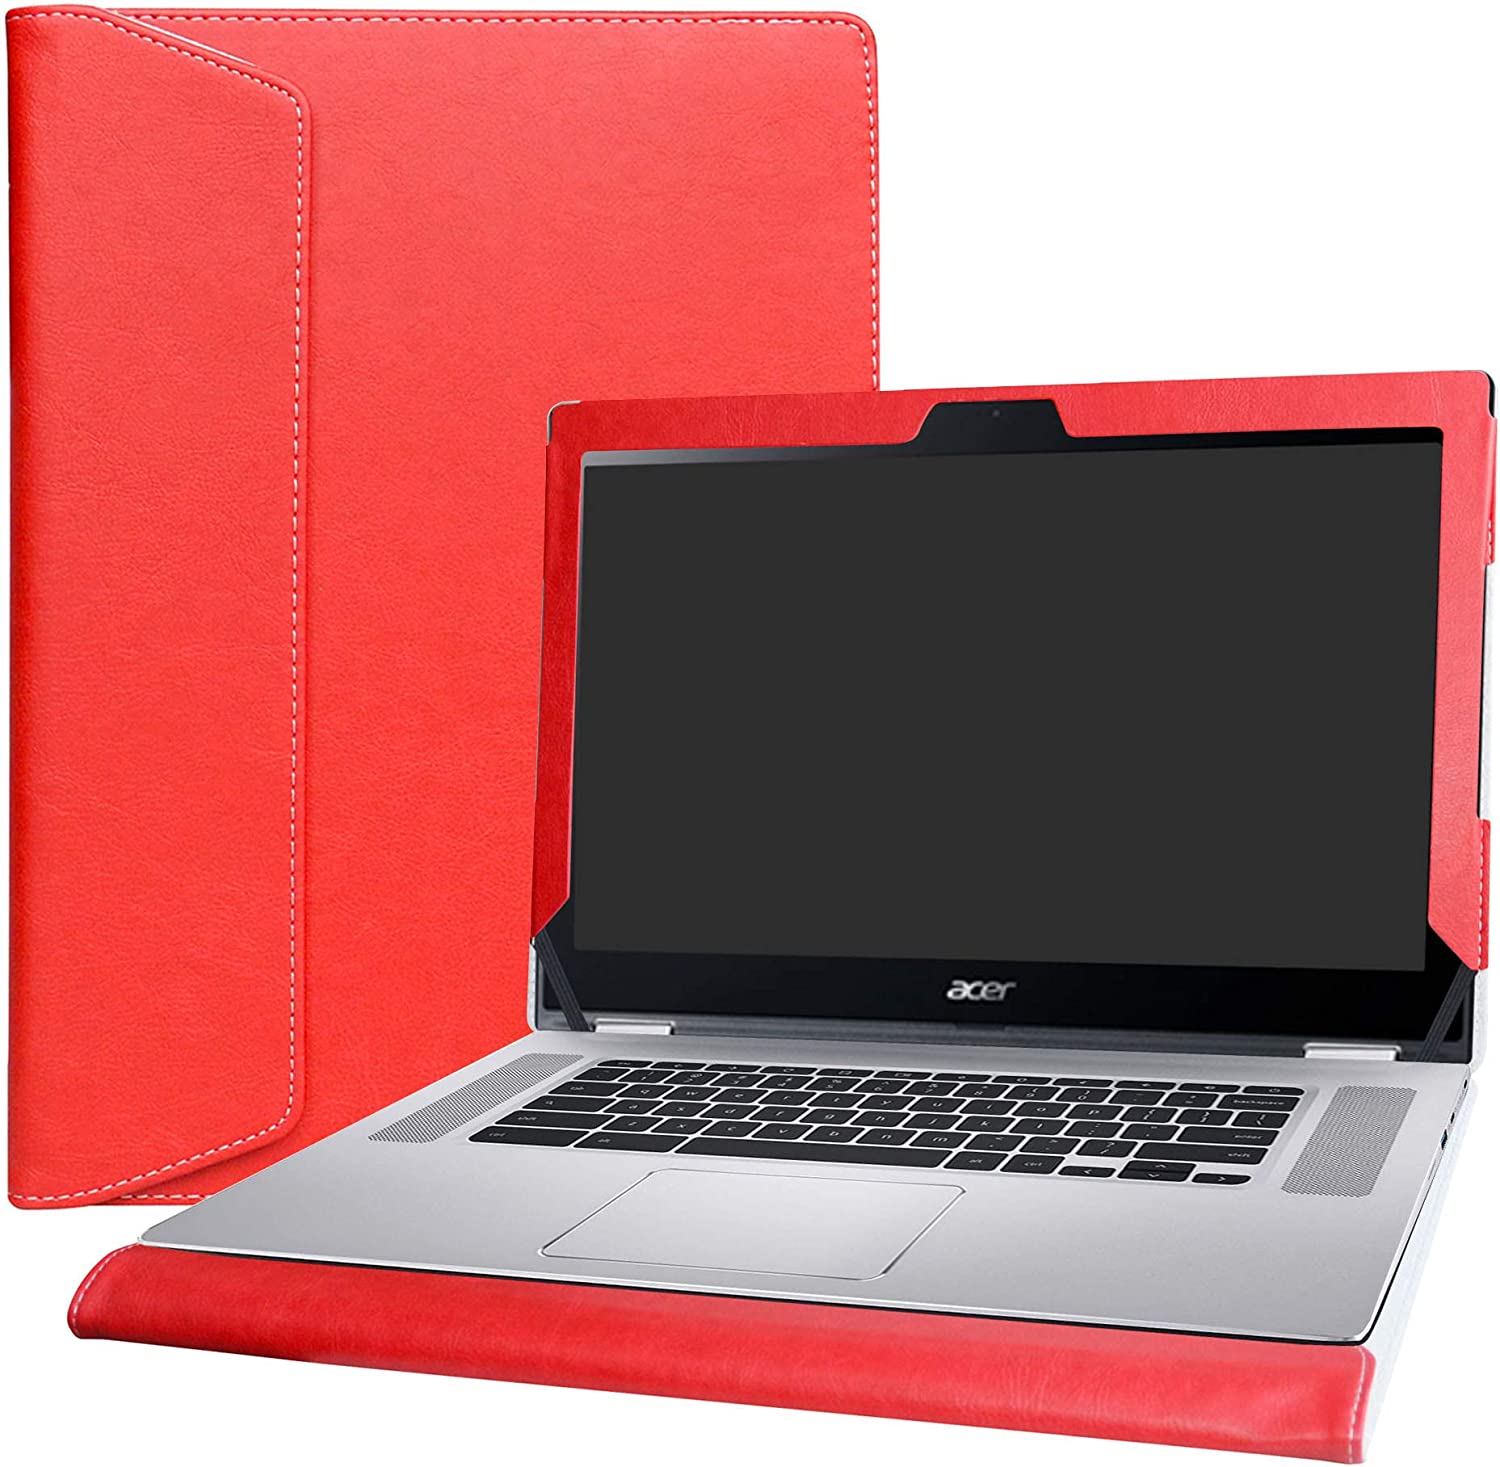 "Alapmk Protective Case Cover for 15.6"" ACER CHROMEBOOK Spin 15 CP315-1H Series Laptop(Warning:Not fit Acer Chromebook 15 CB315-1HT & C910 CB5-571 CB3-532 CB3-531 CB515 Series),Red"